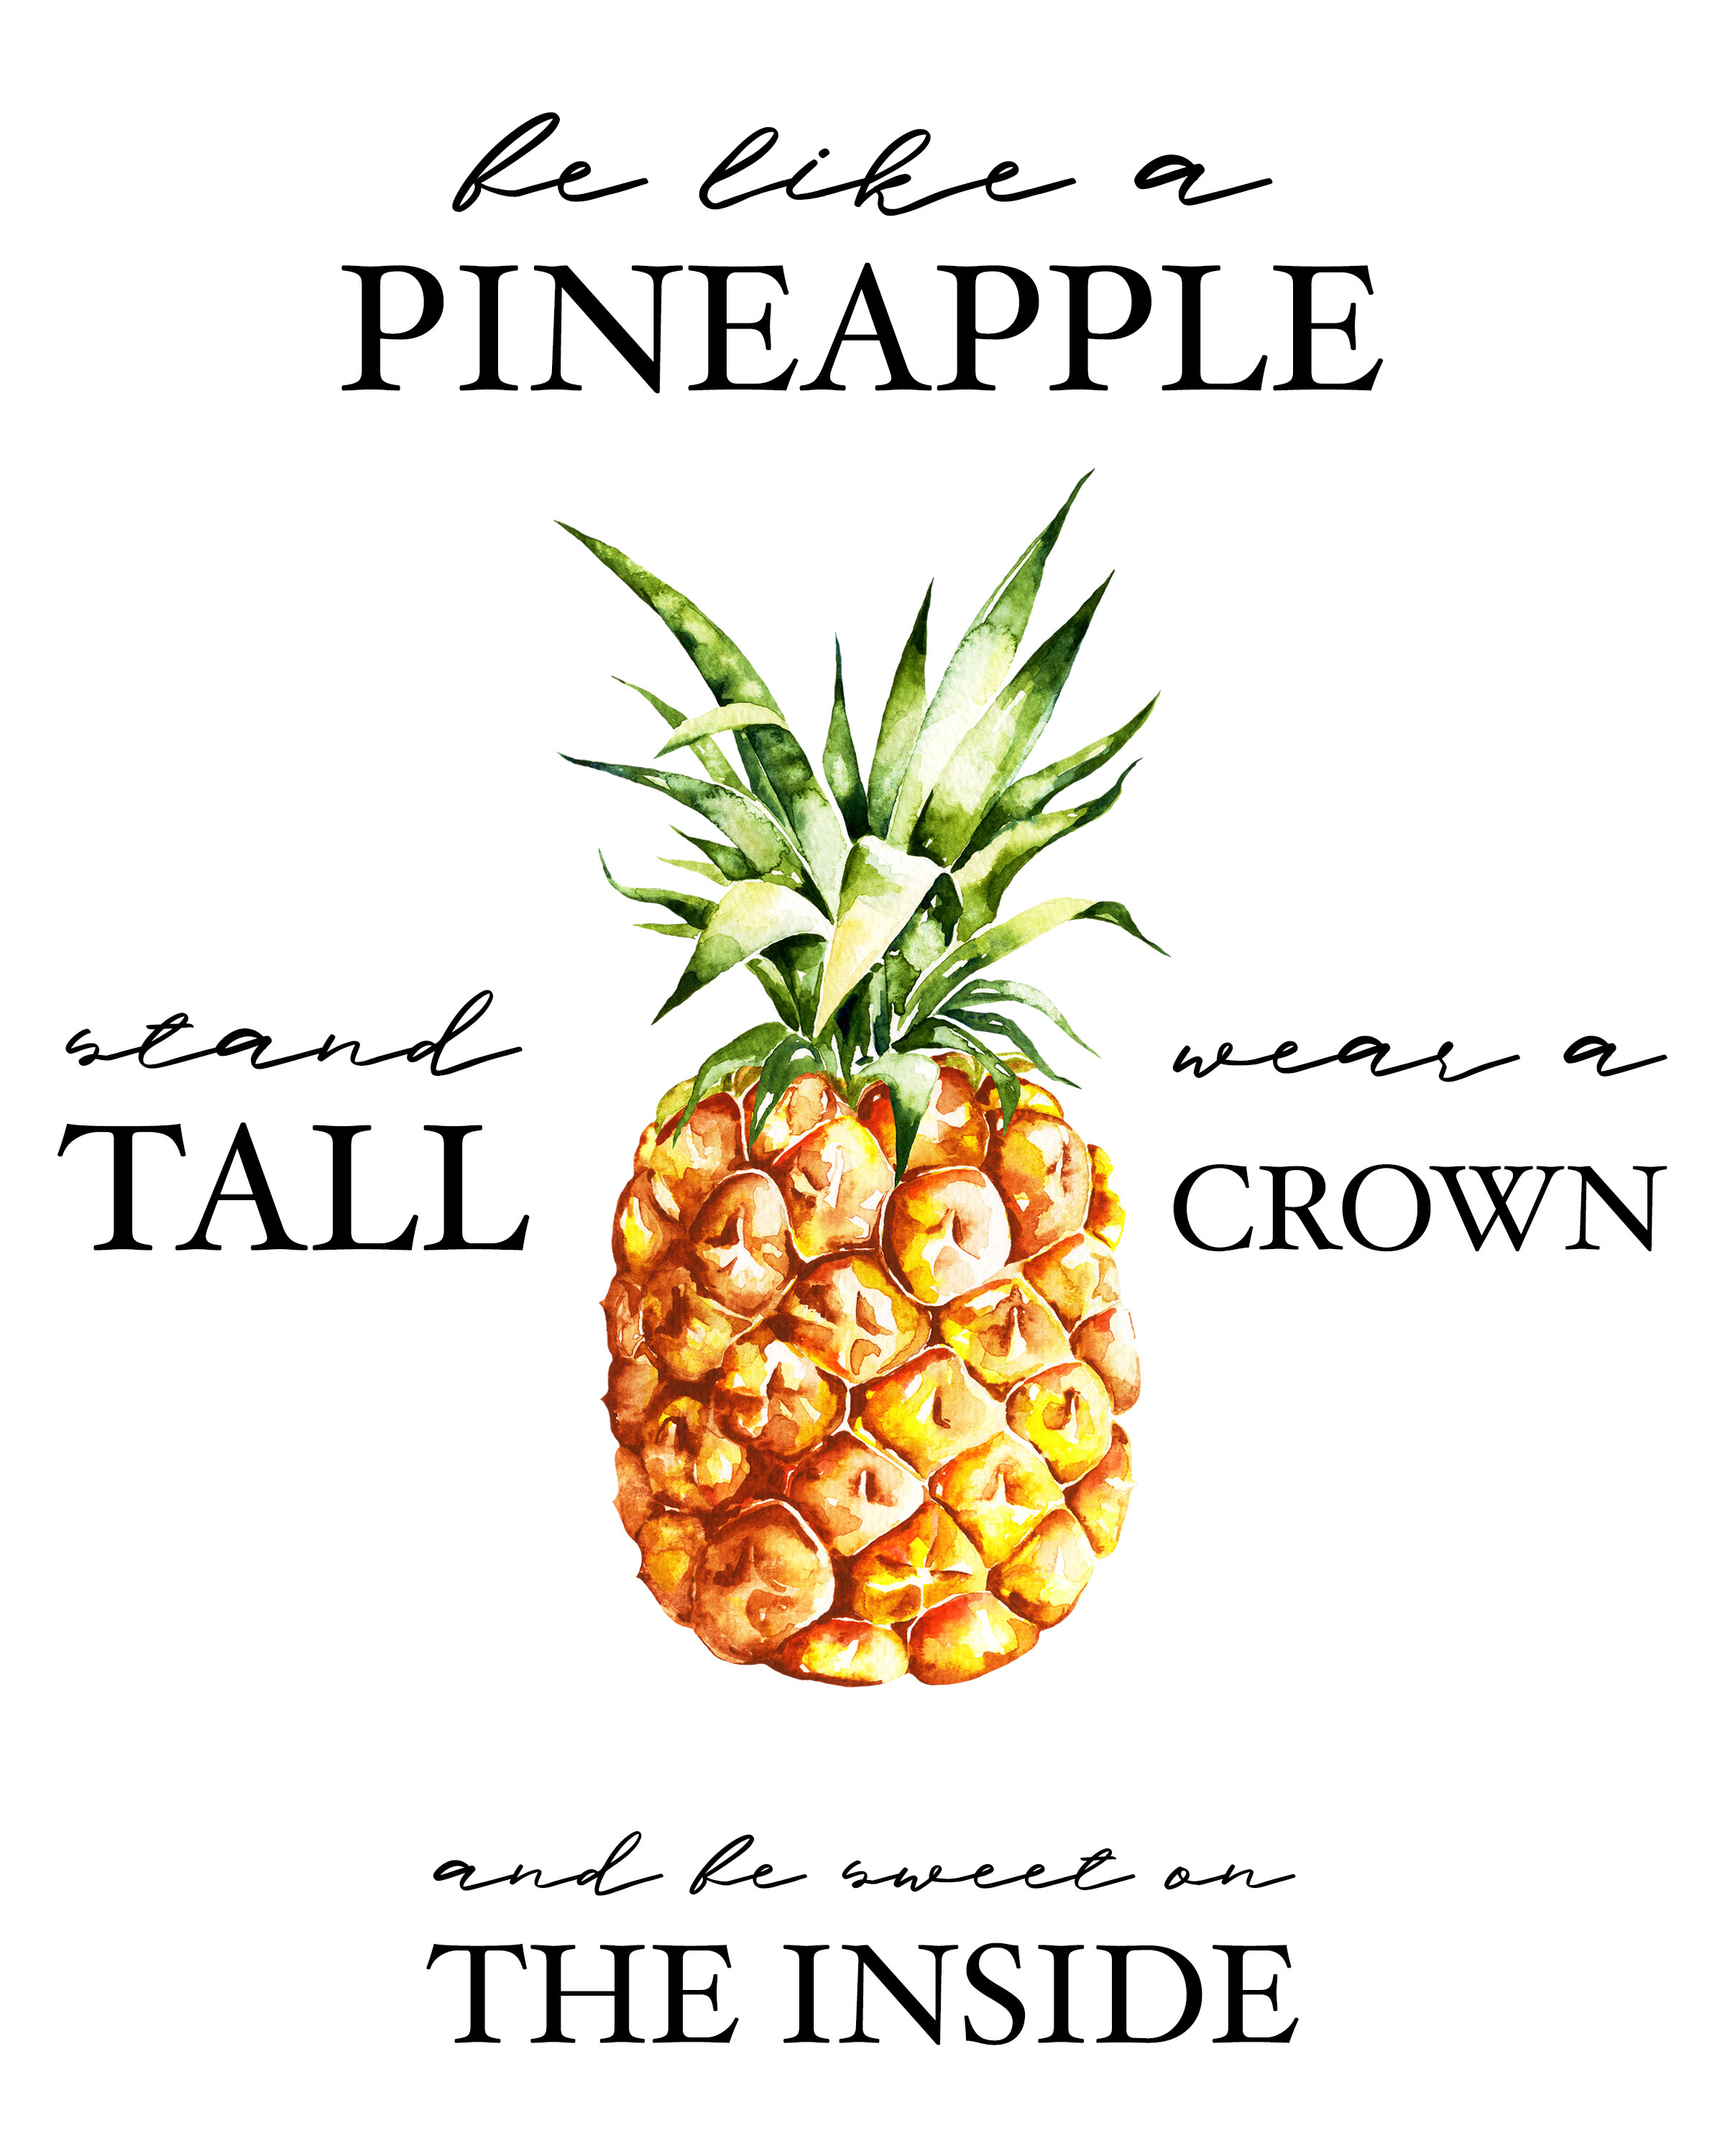 graphic relating to Free Printable Pineapple identified as Free of charge Printable Pineapple Wall Artwork - The Cottage Market place